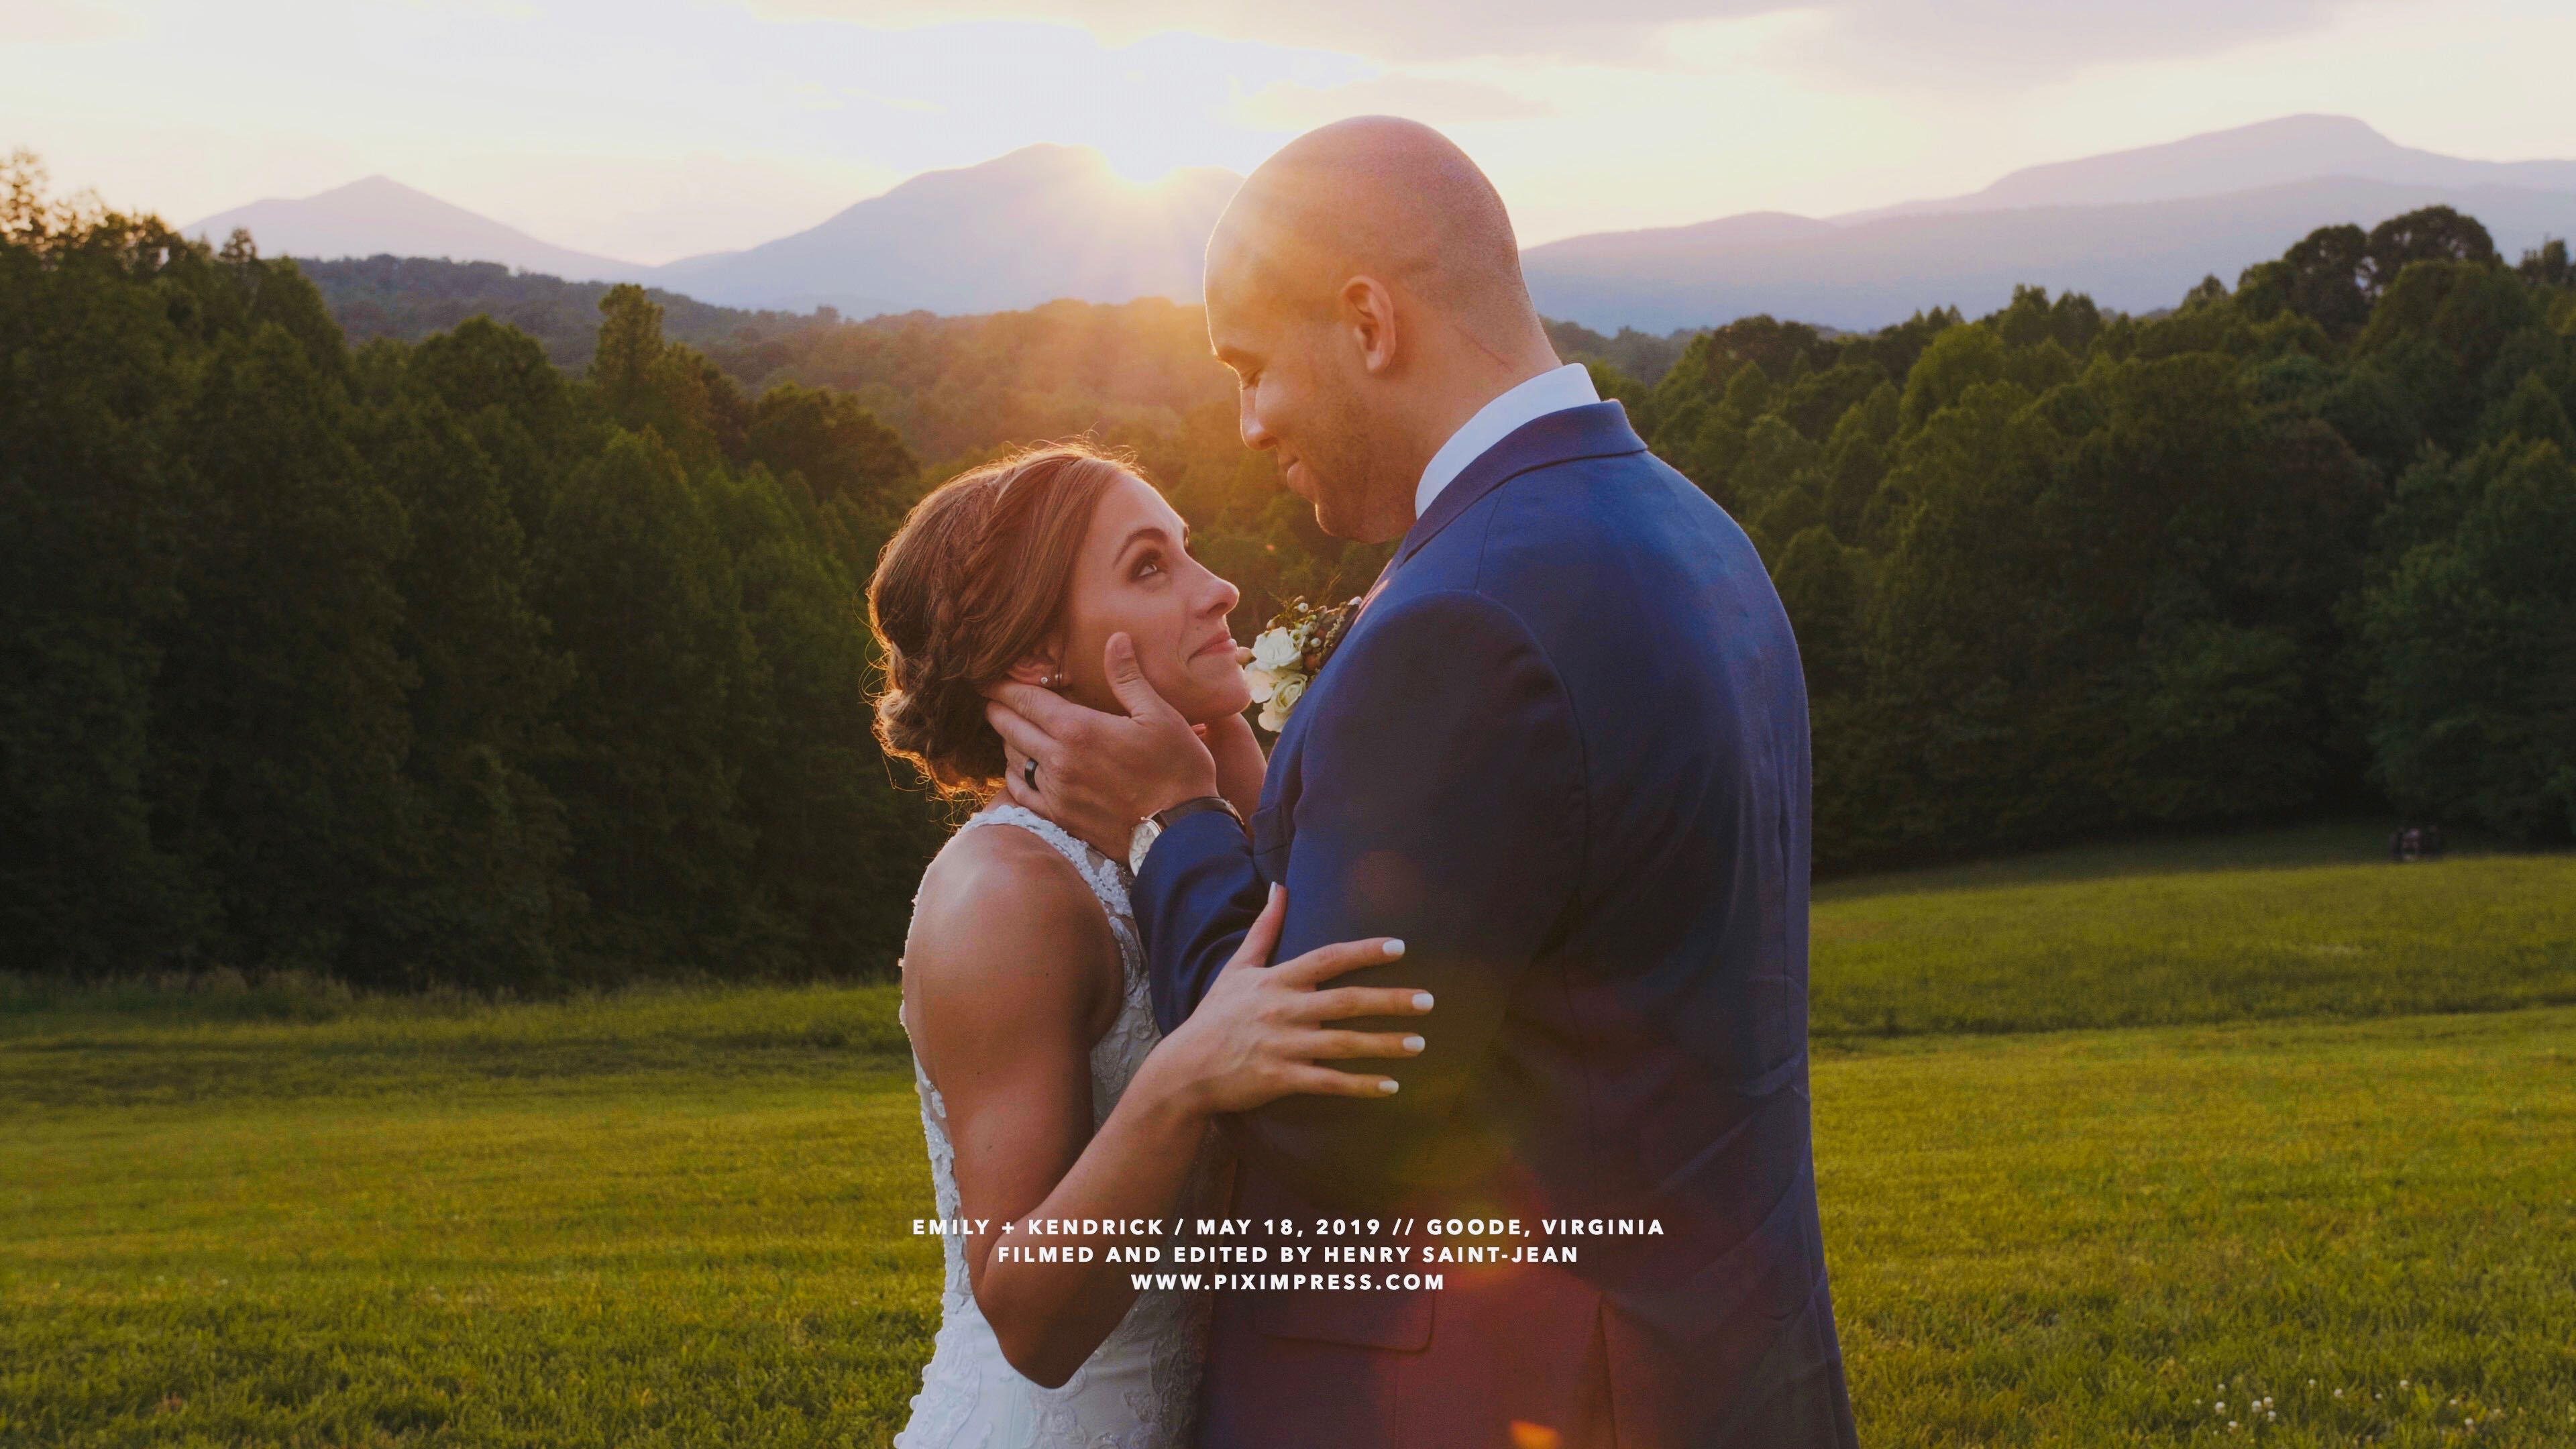 Emily + Kendrick | Goode, Virginia | Glass Hill Venue